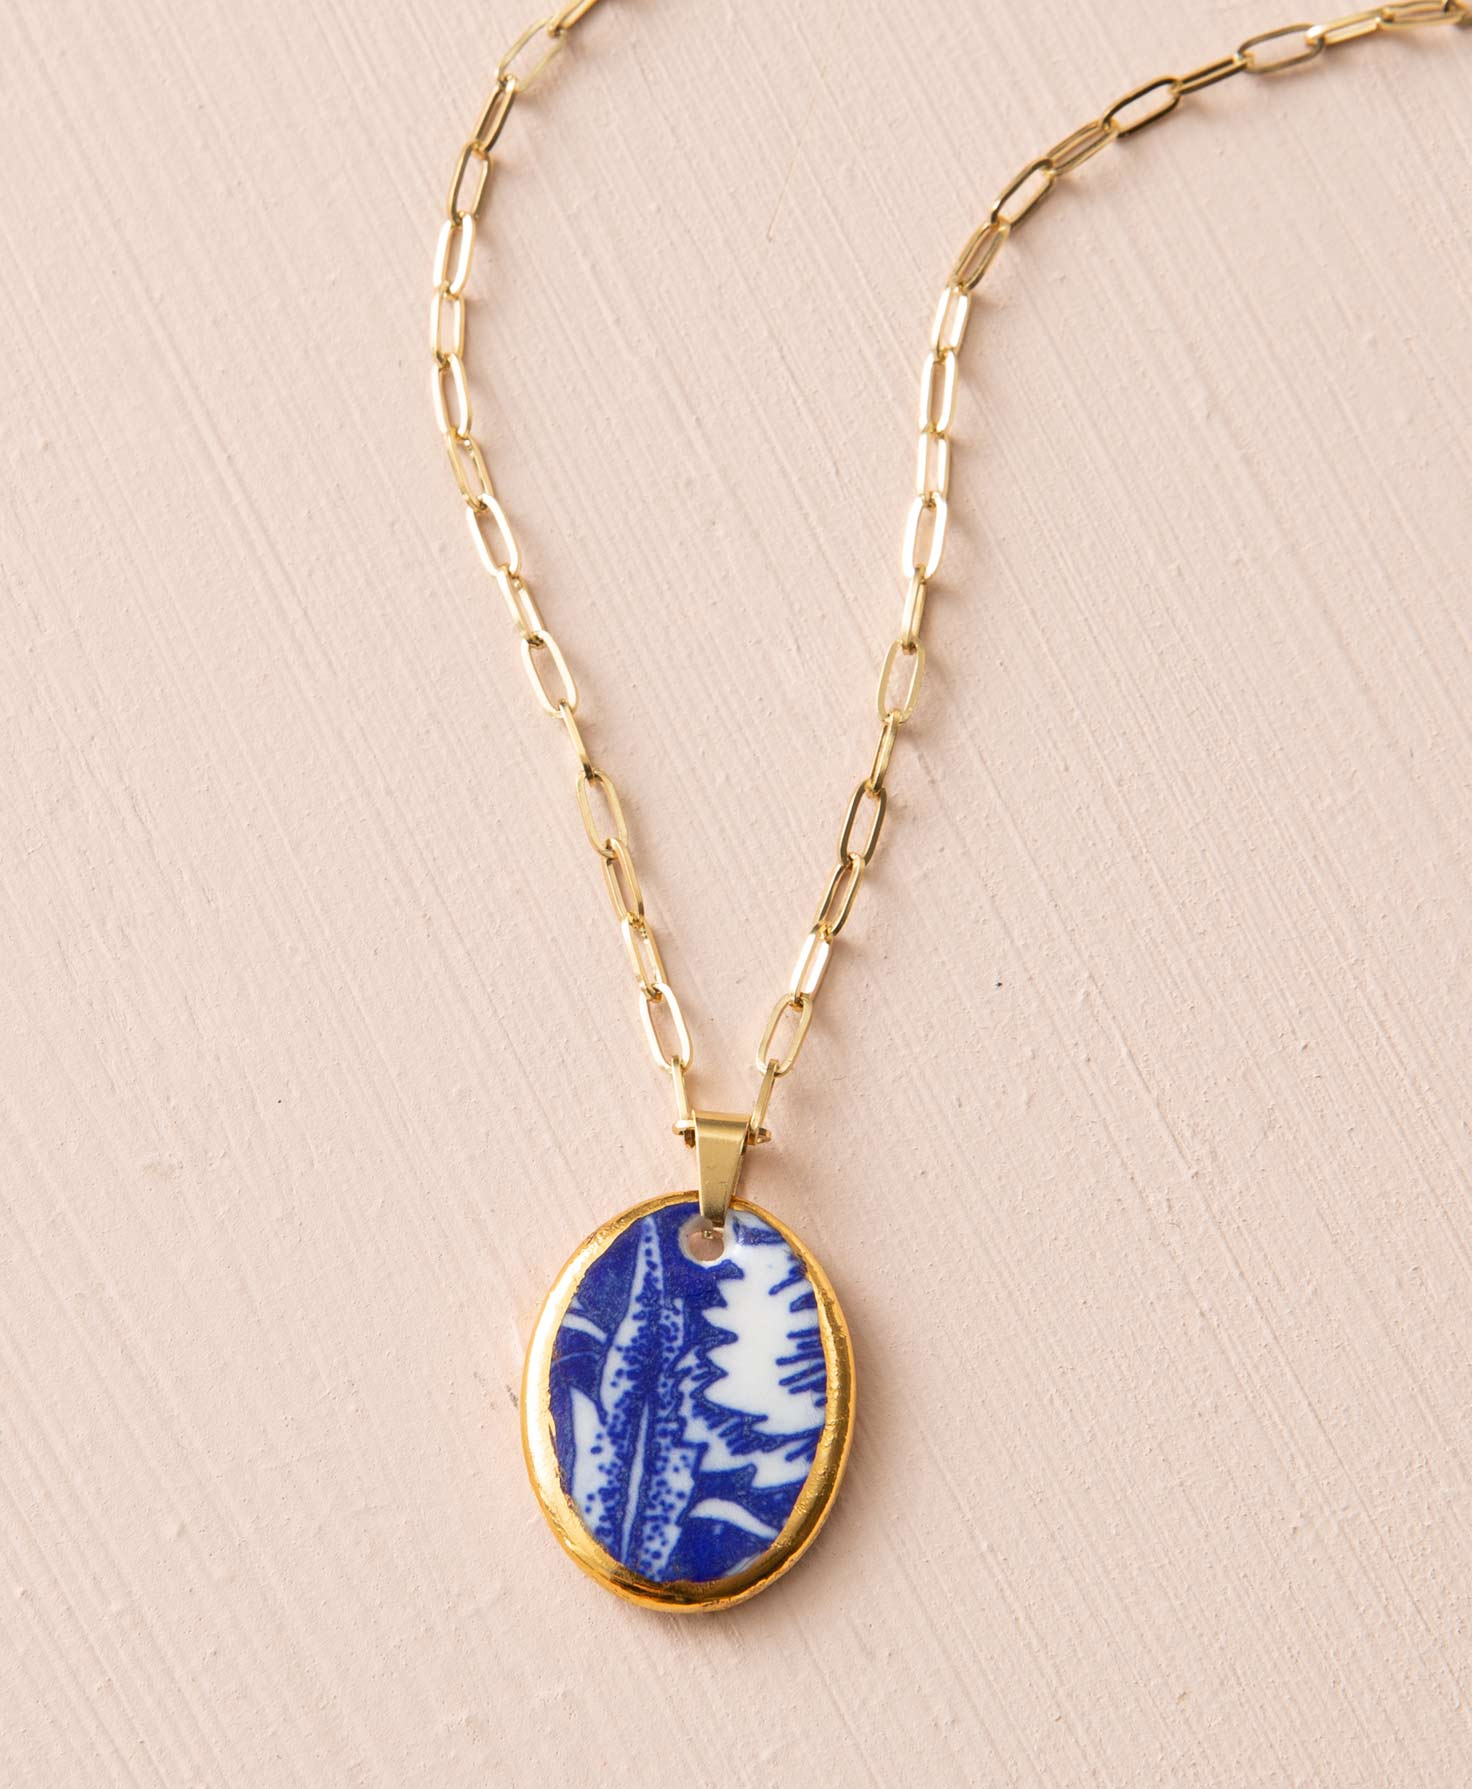 The Thrive Necklace rests on a blush colored background. It features a golden chain composed of elongated, oval-shaped links. Linked to the chain is an oval pendant composed of porcelain with a gleaming golden edge. The porcelain has a white background and a vibrant blue floral design reminiscent of classic china patterns.